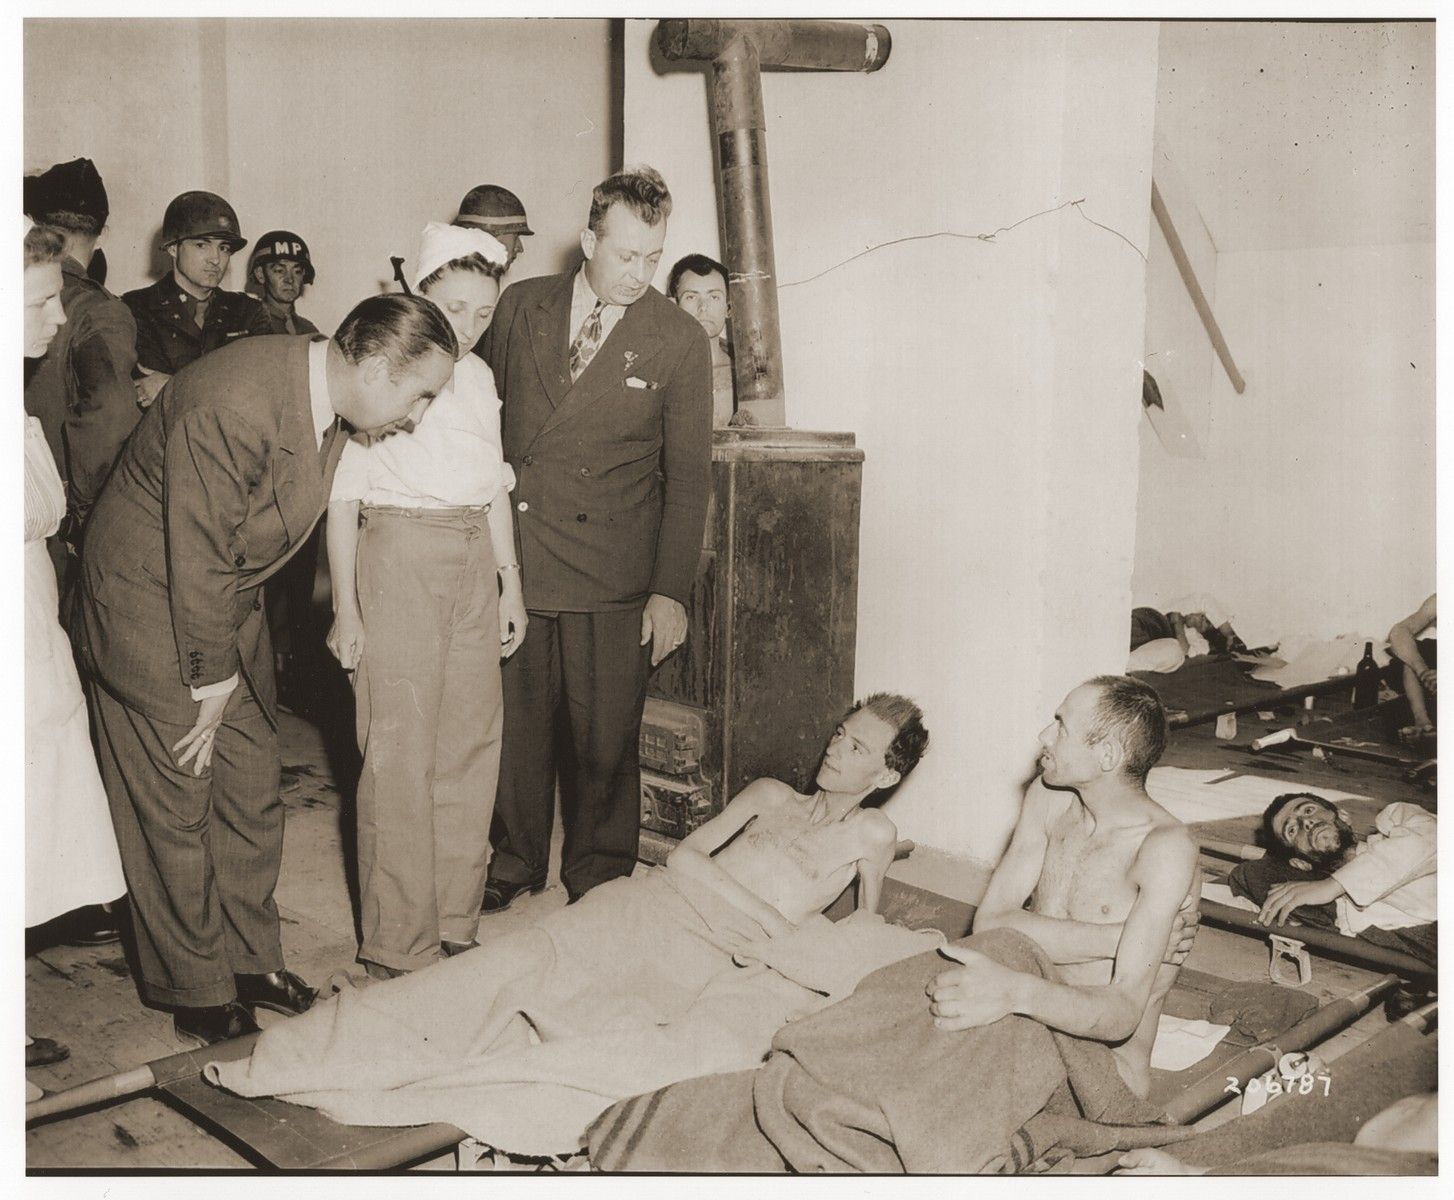 U.S. Congressman Everett M. Dirkson visits former concentration camp prisoners recuperating in an Allied hospital in Linz during his world tour to determine the financial needs of federal bureaus.